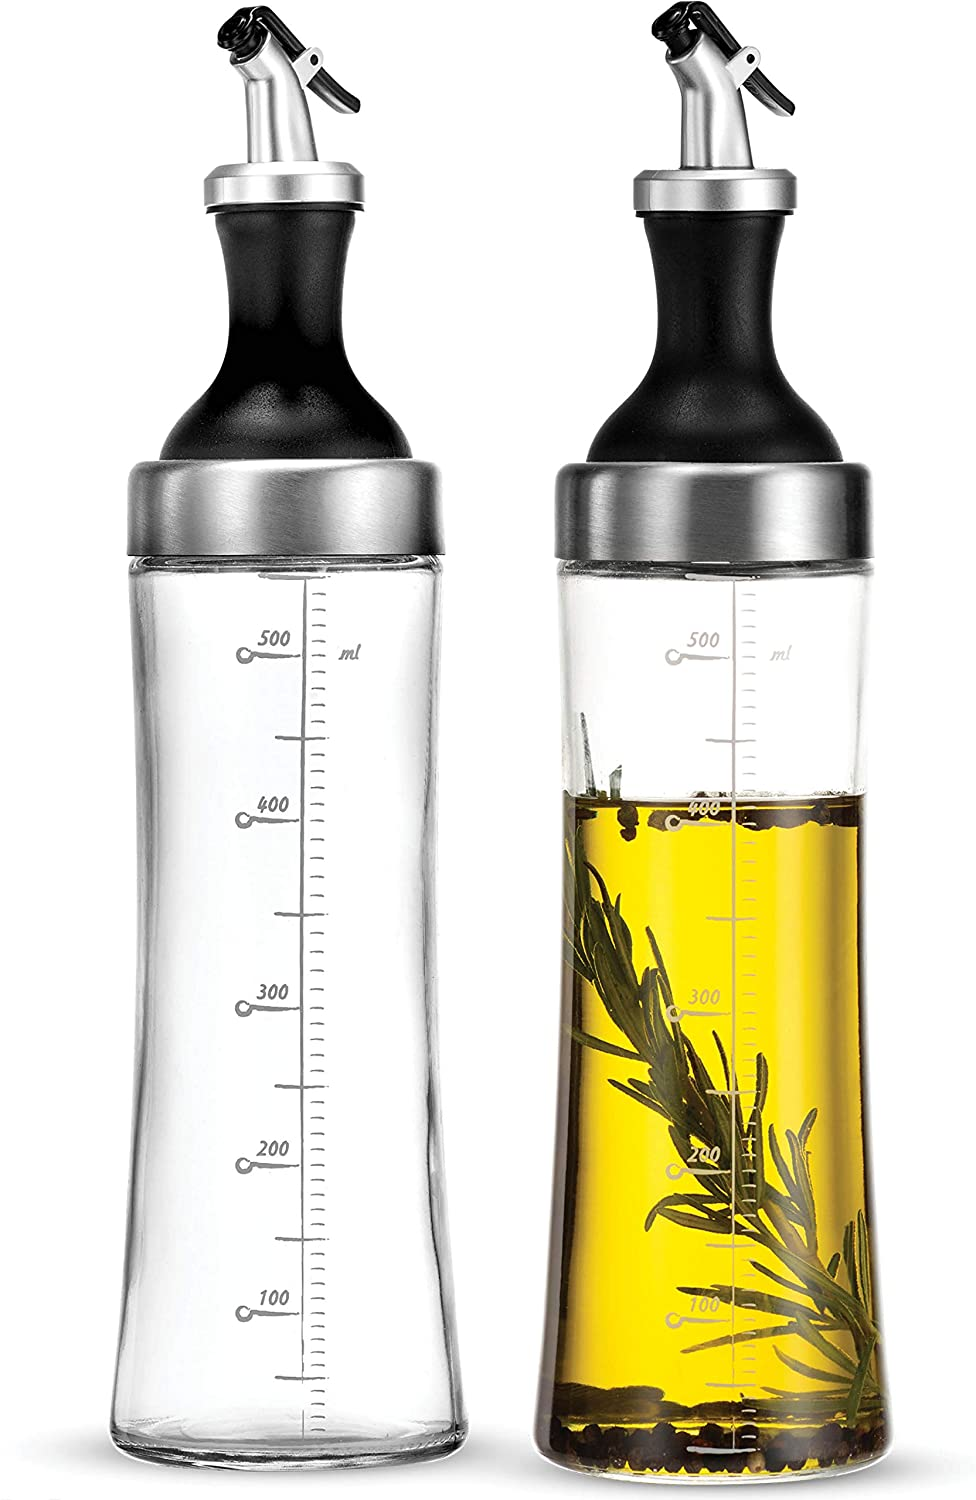 Superior Glass Oil and Vinegar Dispenser, (set of 2) Modern Olive Oil Dispenser, Wide Opening for Easy Refill and Cleaning, Clear Lead Free Glass Oil Bottle, Pouring Spouts, 18 Oz. Cruet Set: Home Improvement